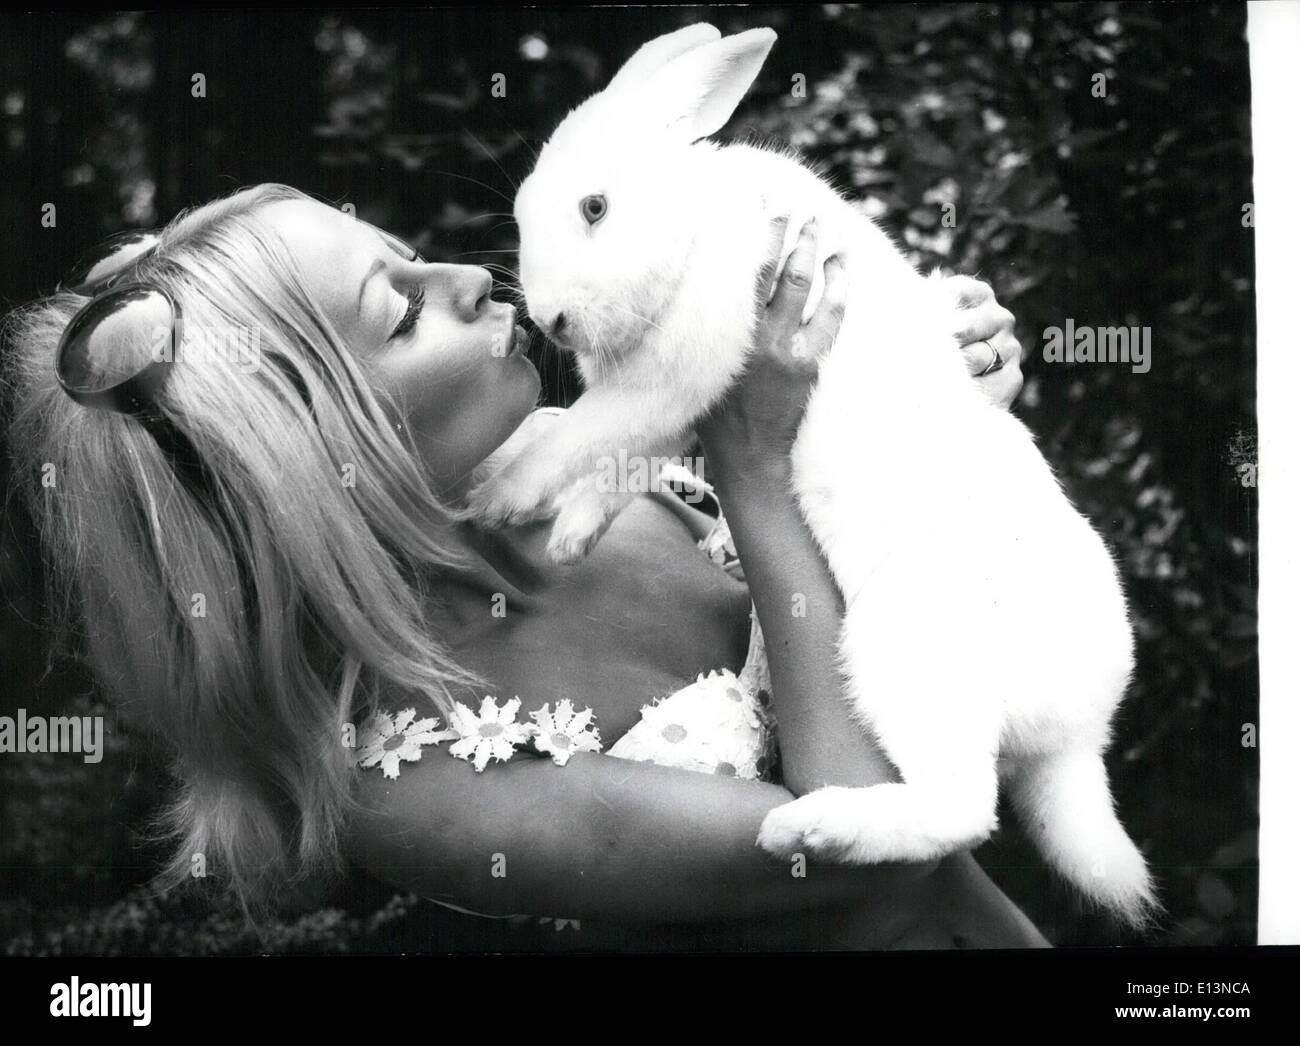 Mar. 02, 2012 - Pictured is model Gisela Beck holding ''Floppi.'' She considers the rabbit her good luck charm. Dr. Bleek Presents Check to Blind People's Institute. - Stock Image